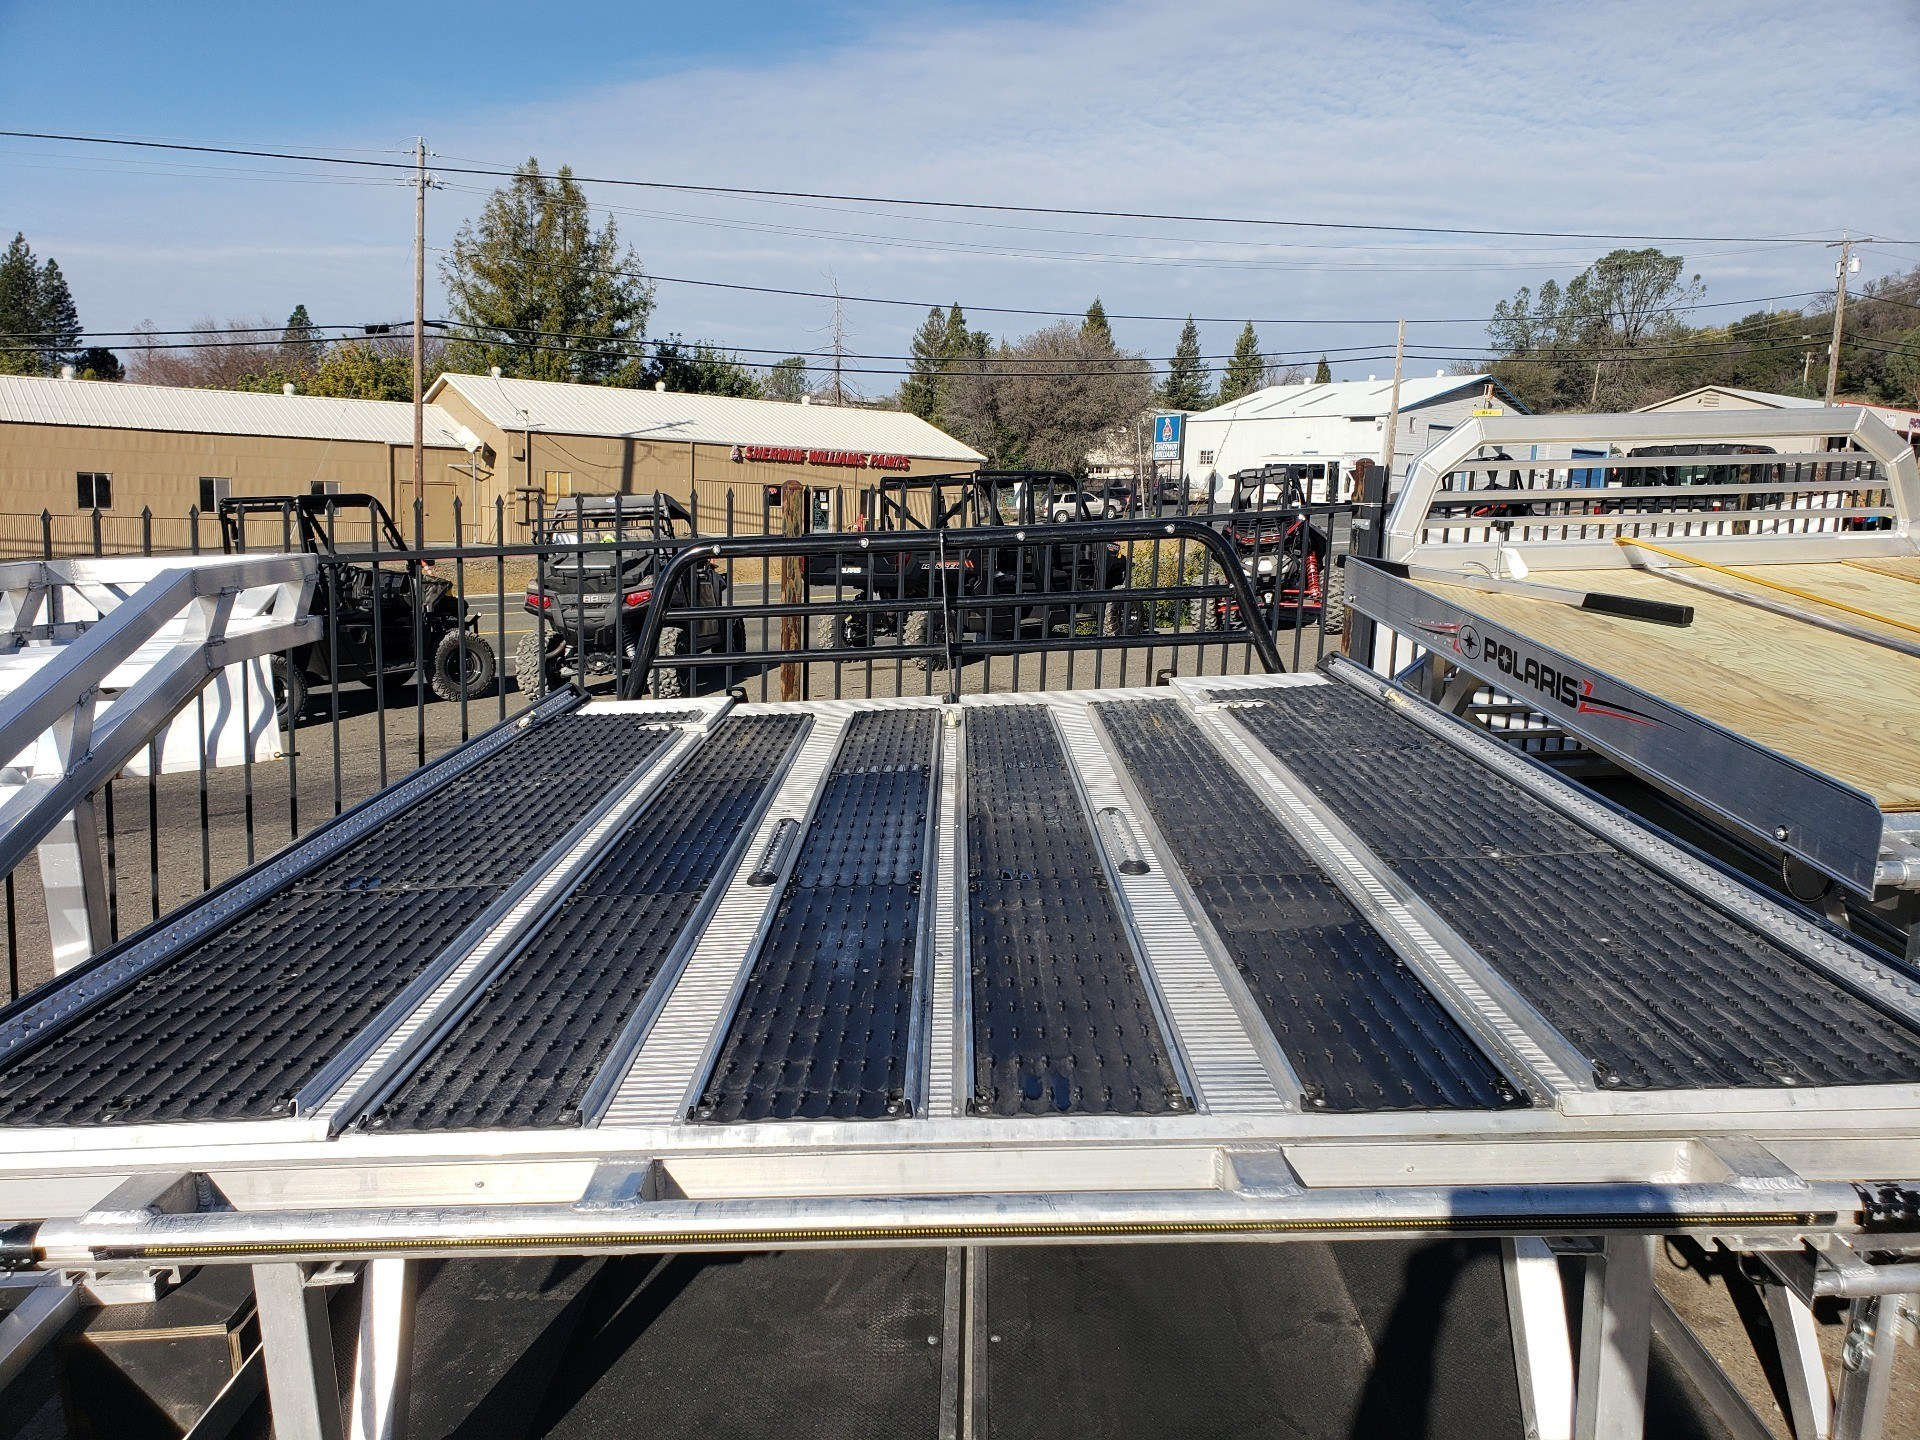 2019 Marlin ExplorePro Sled Deck in Auburn, California - Photo 3